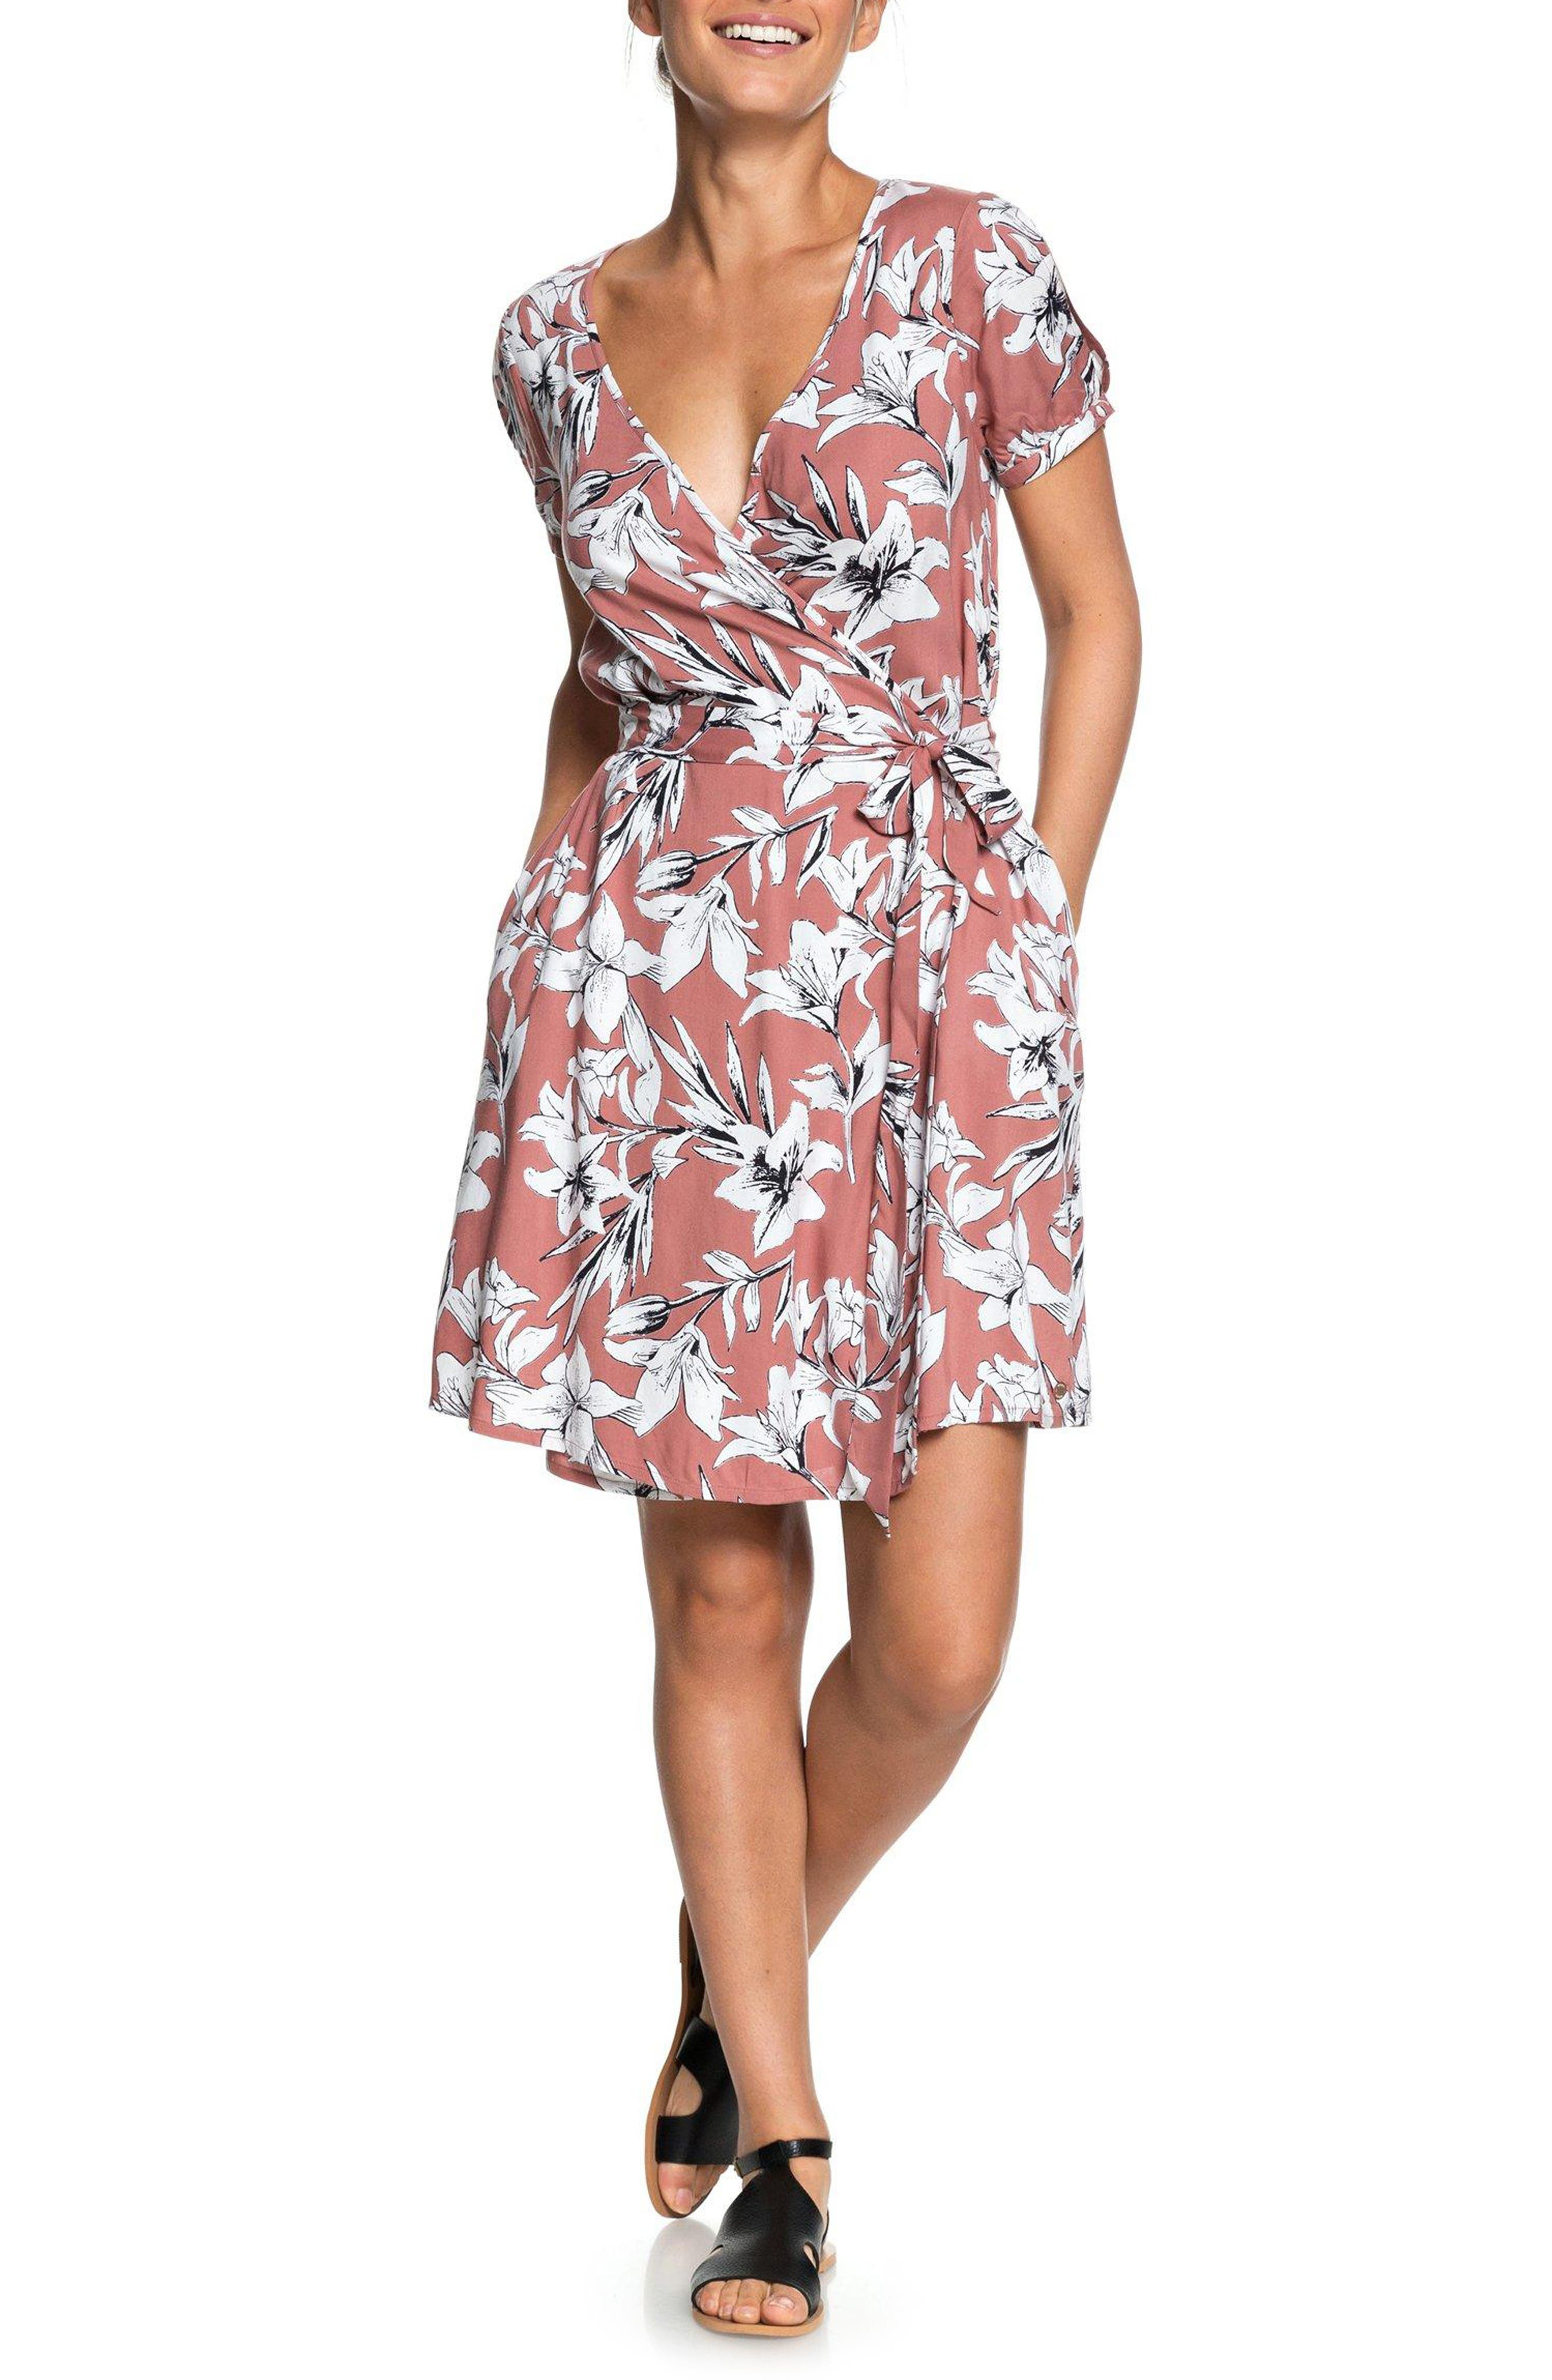 Monument View Floral Print Wrap Dress,                             Main thumbnail 1, color,                             WITHERED ROSE LILY HOUSE